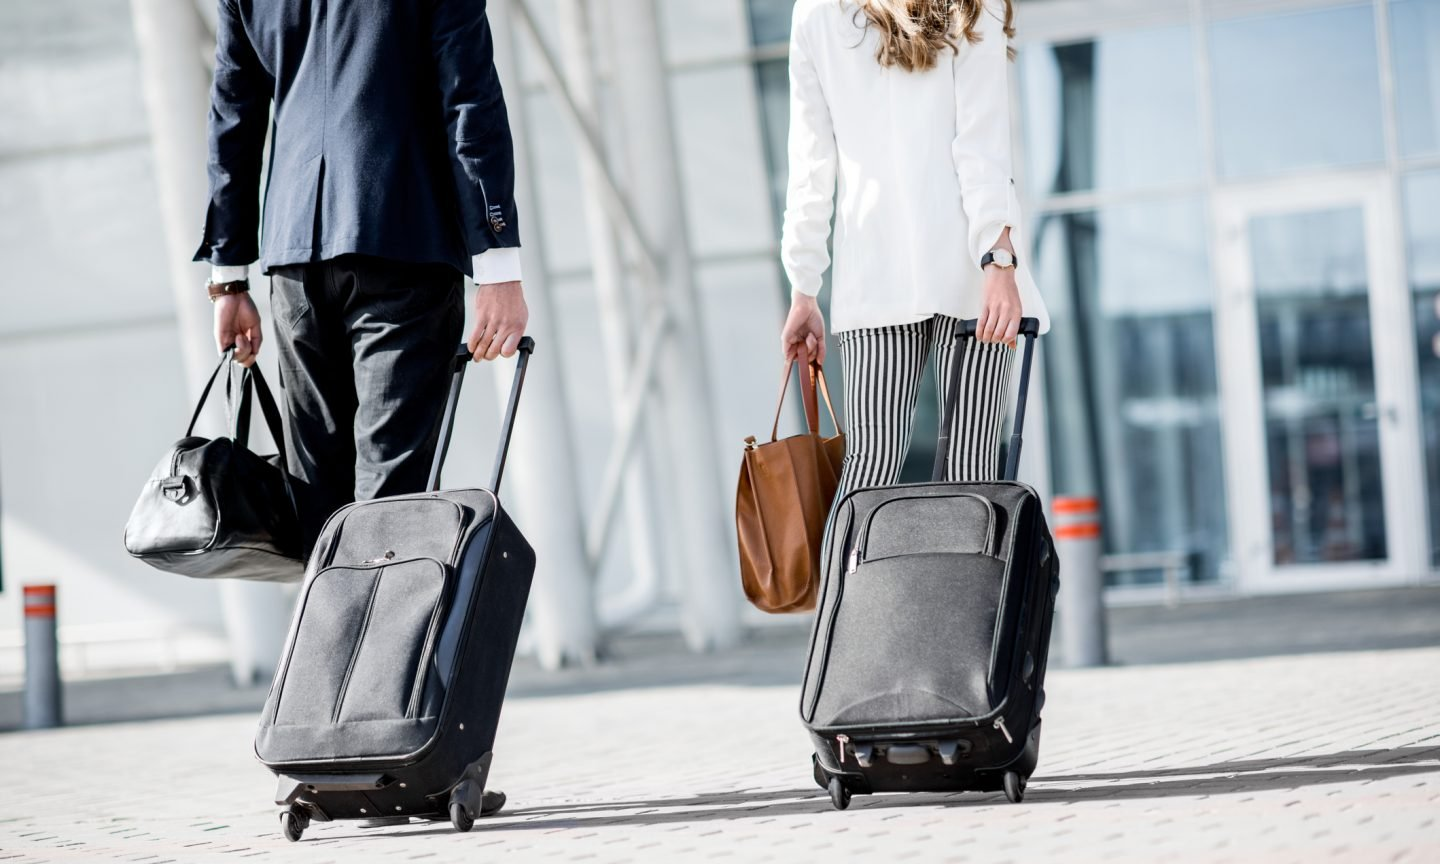 Your Vacations Could Cost More Until Business Travel Returns